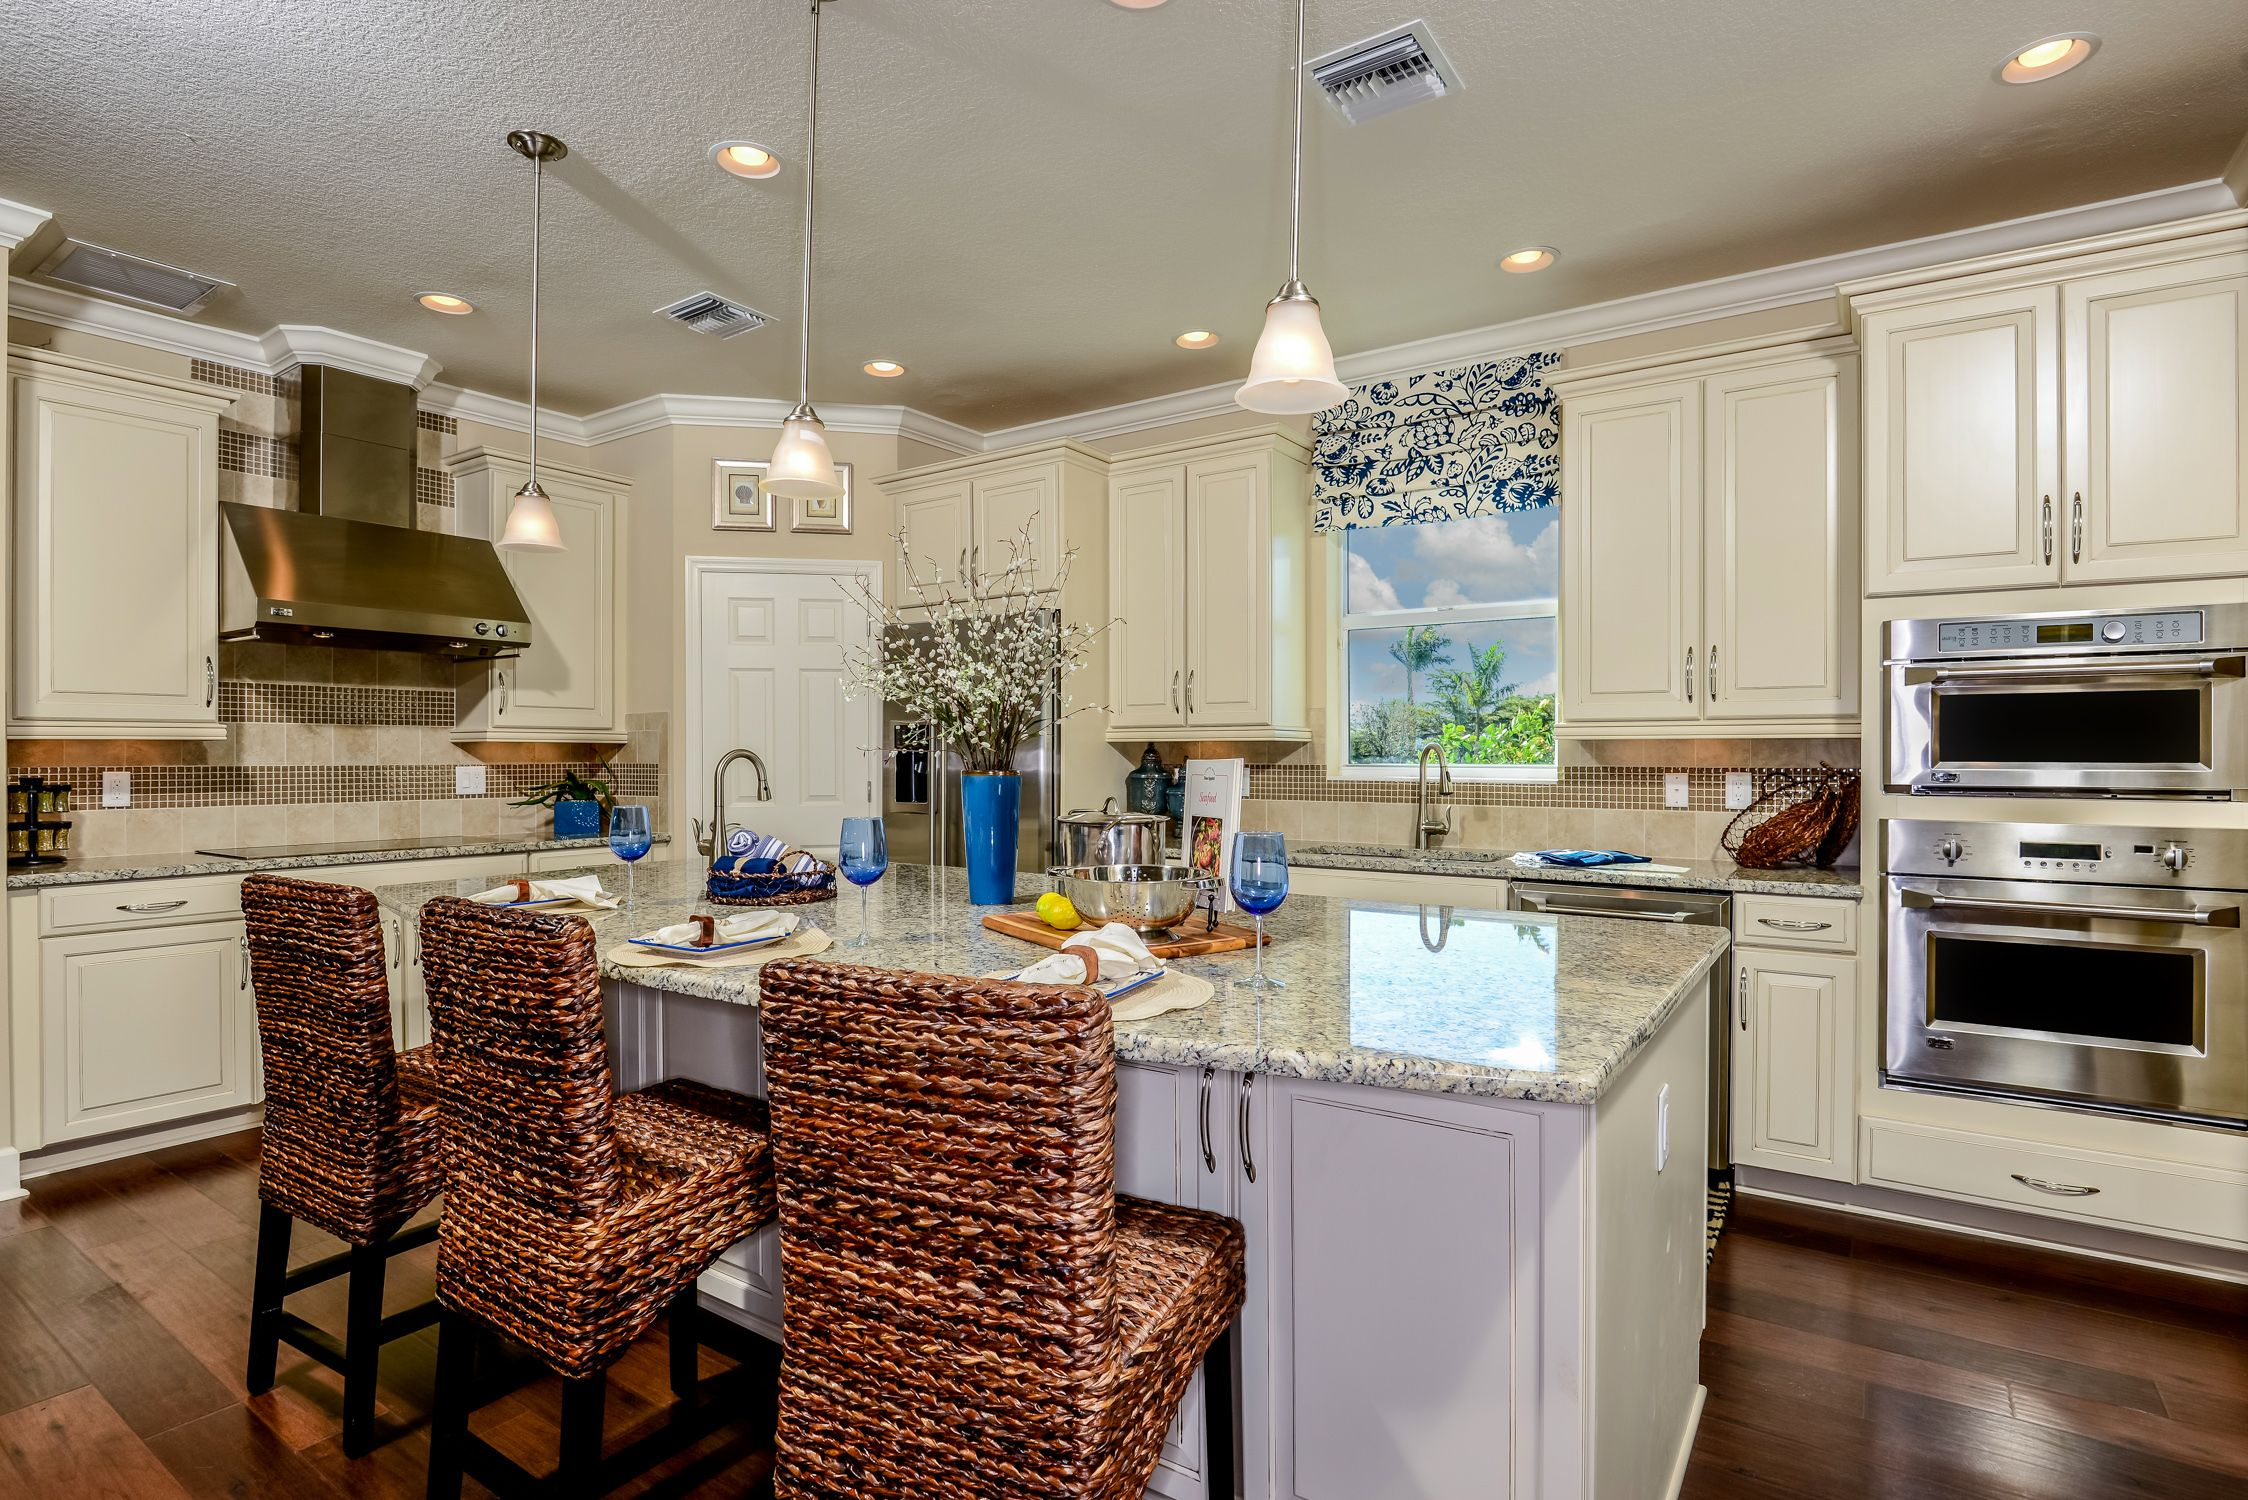 Cook Your Favorites In The Kitchen Of Your Dreams Capecoral Closeout Finalopportunity Drea Beach House Kitchens Kitchen Inspirations New Homes For Sale